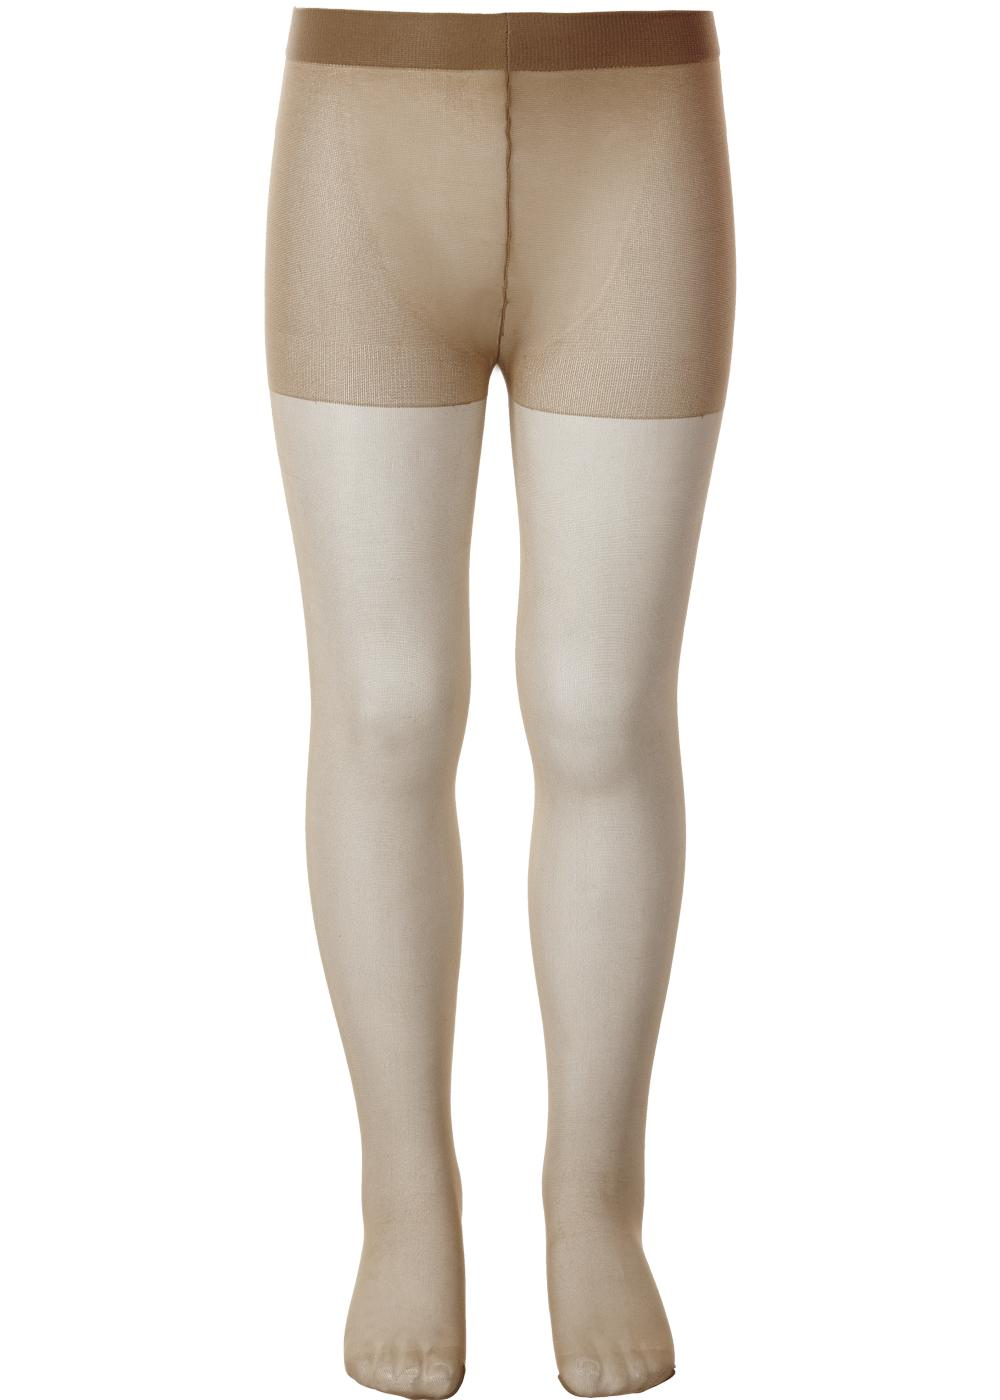 Girls' 20 denier sheer tights